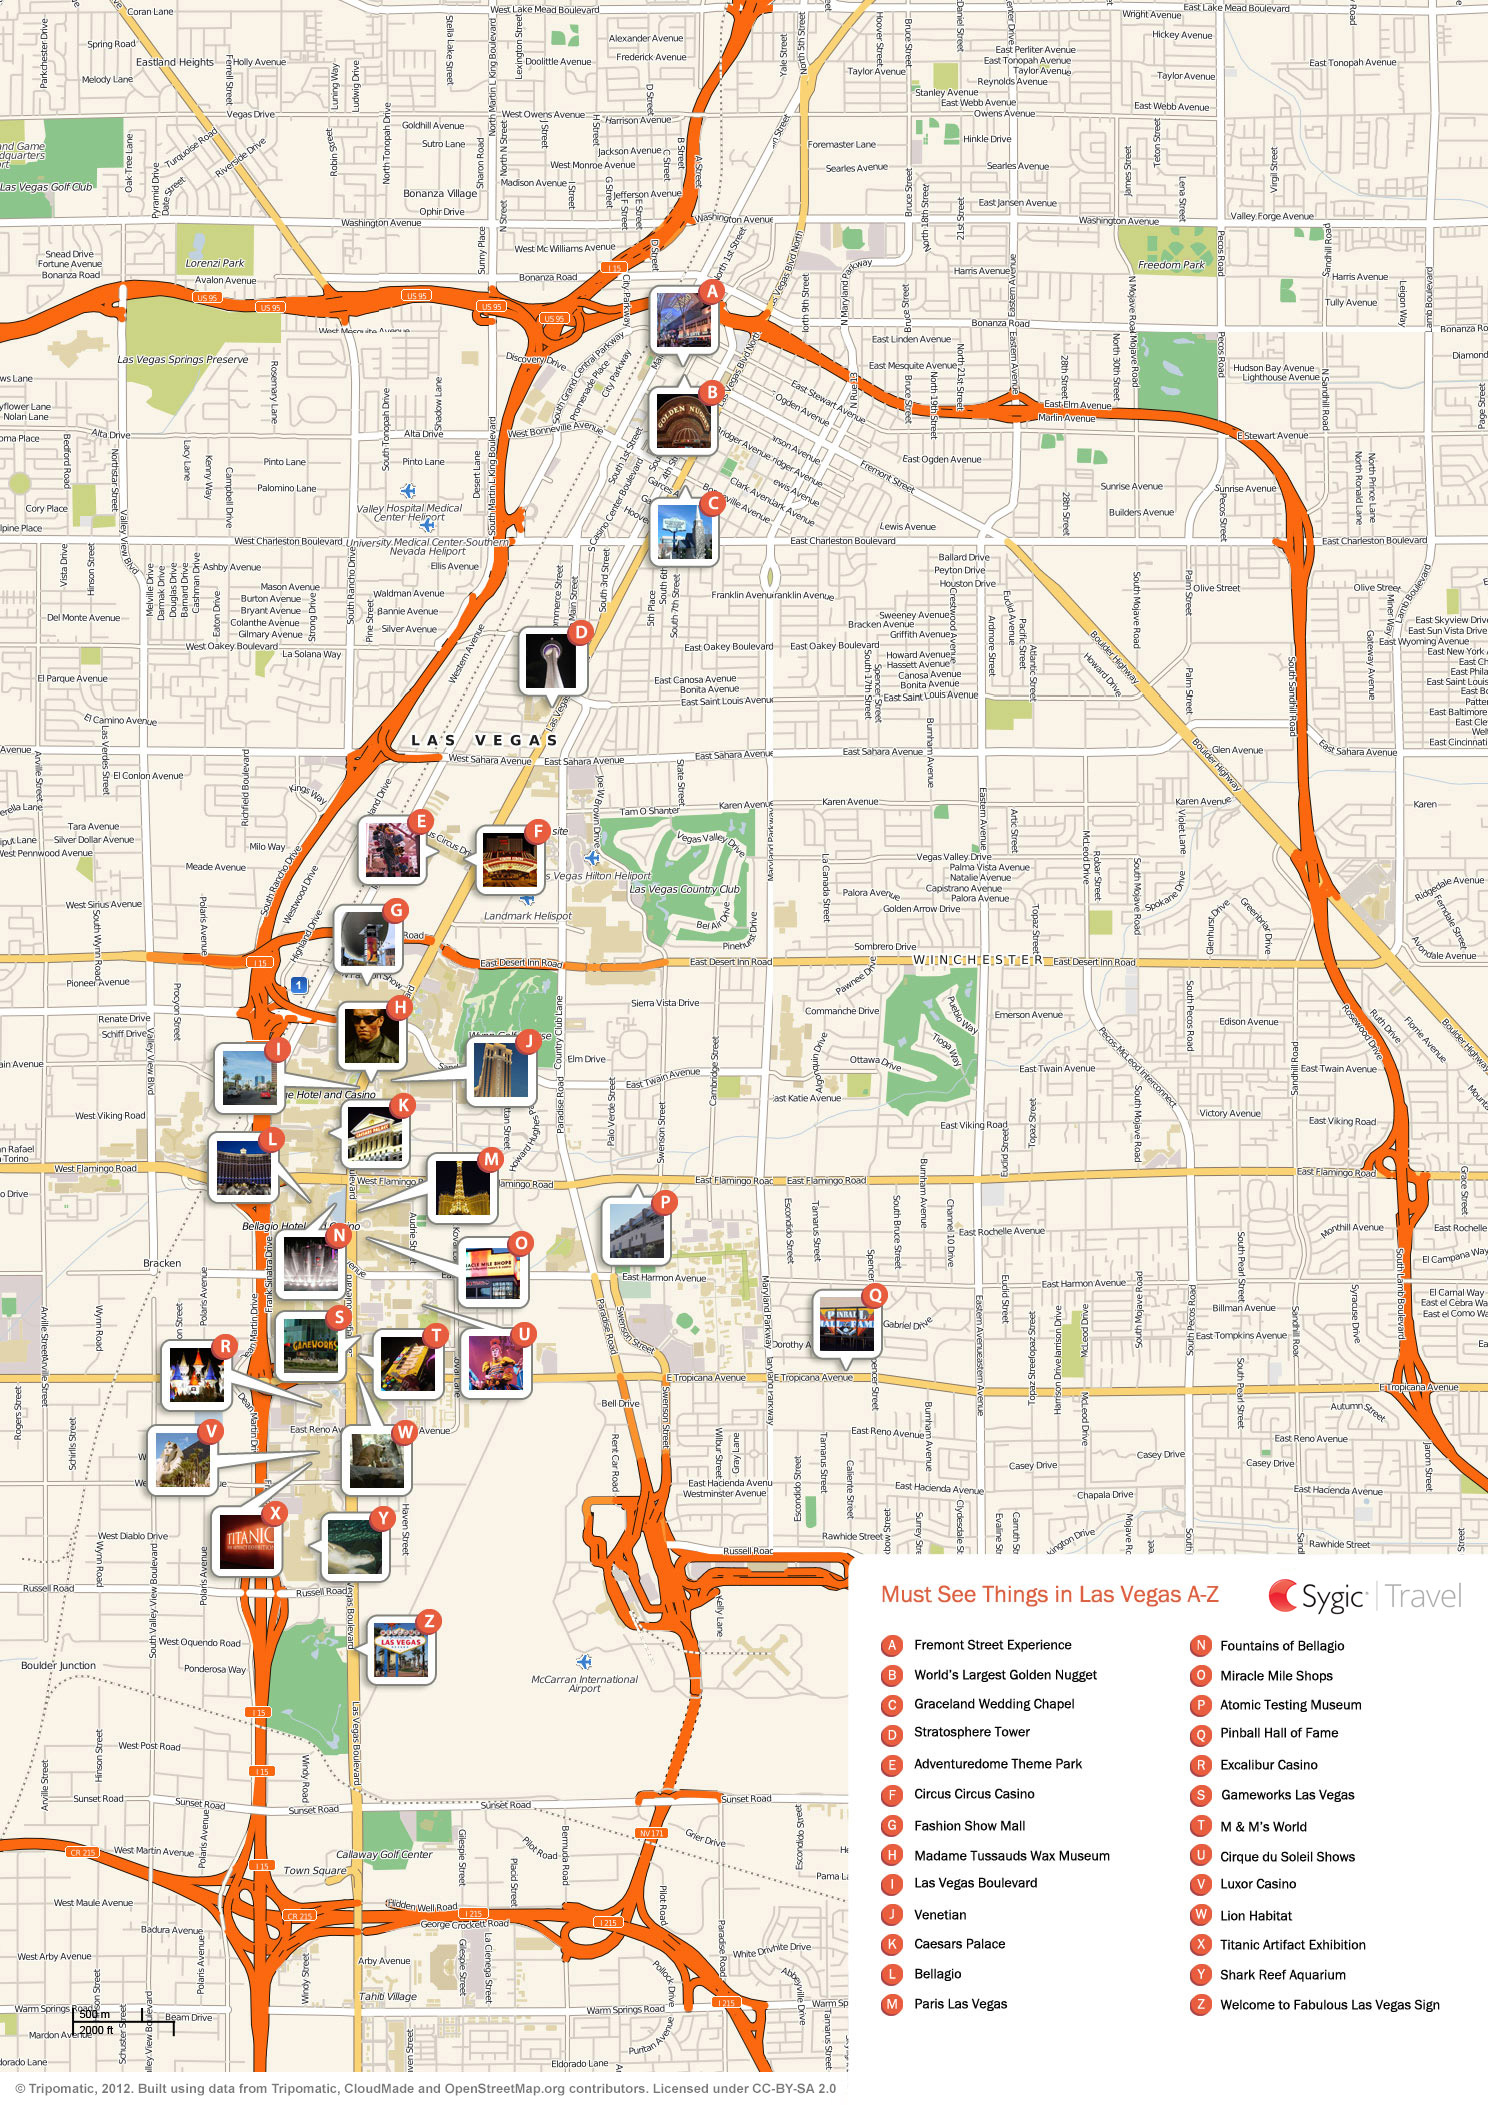 Las Vegas Printable Tourist Map Sygic Travel